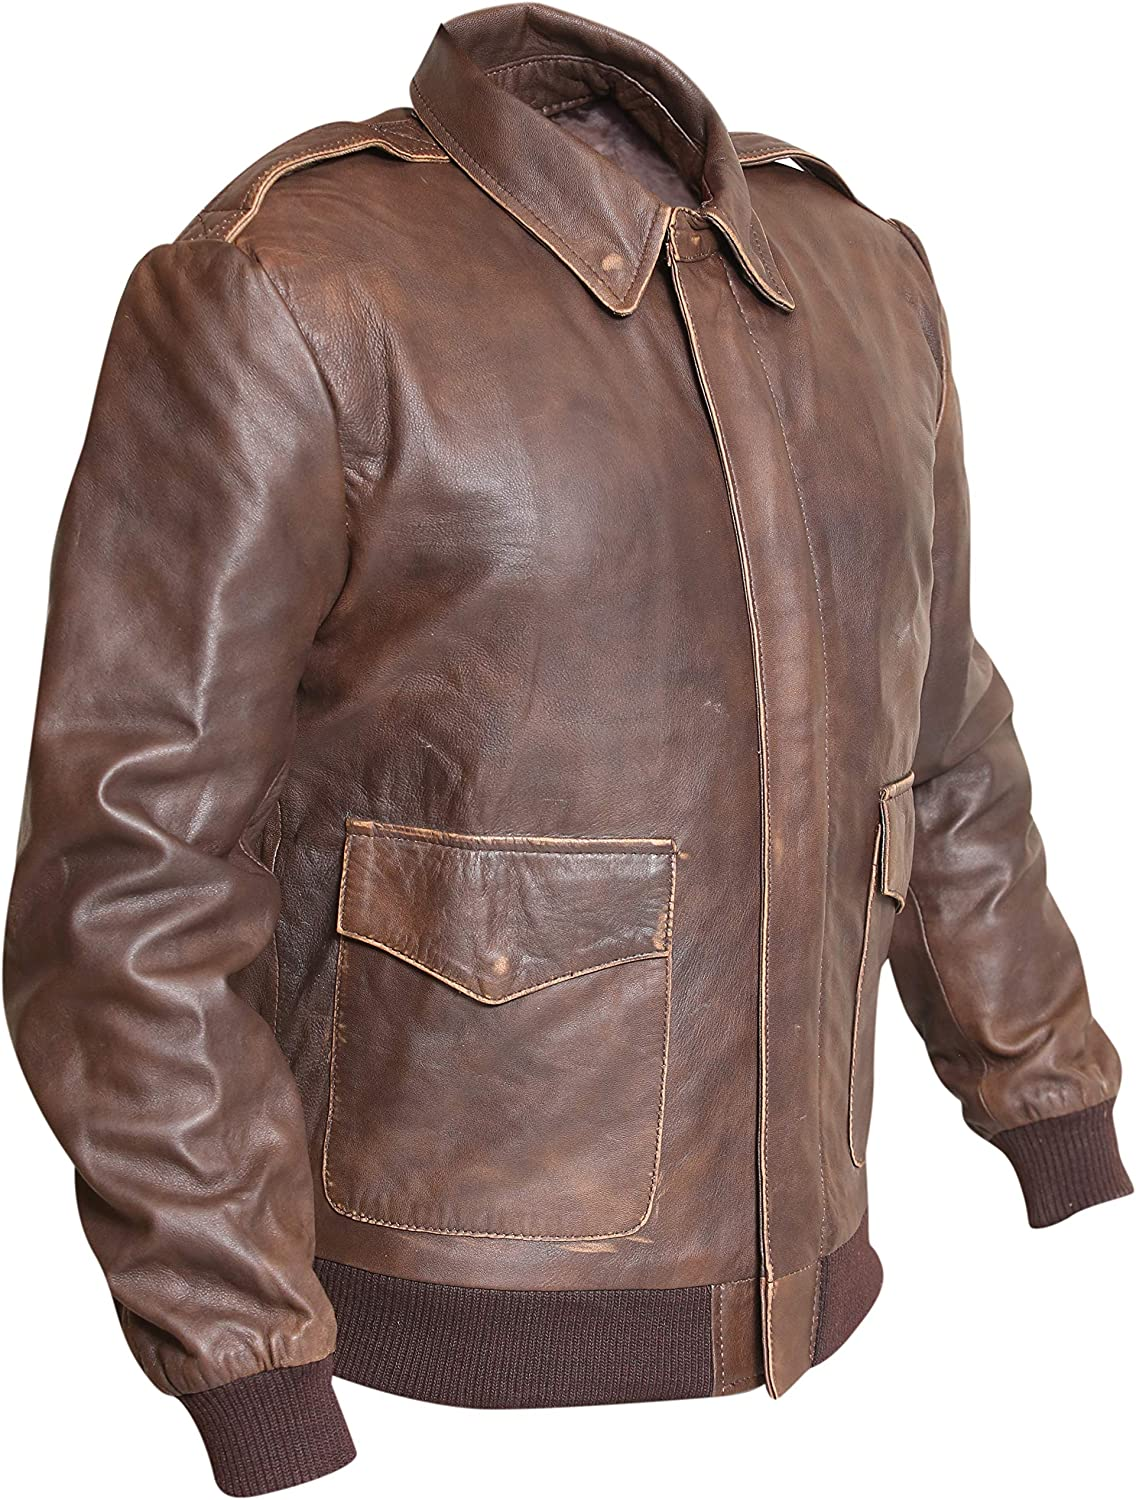 Aviator A2 Distressed Brown Real Leather Bomber Jacket